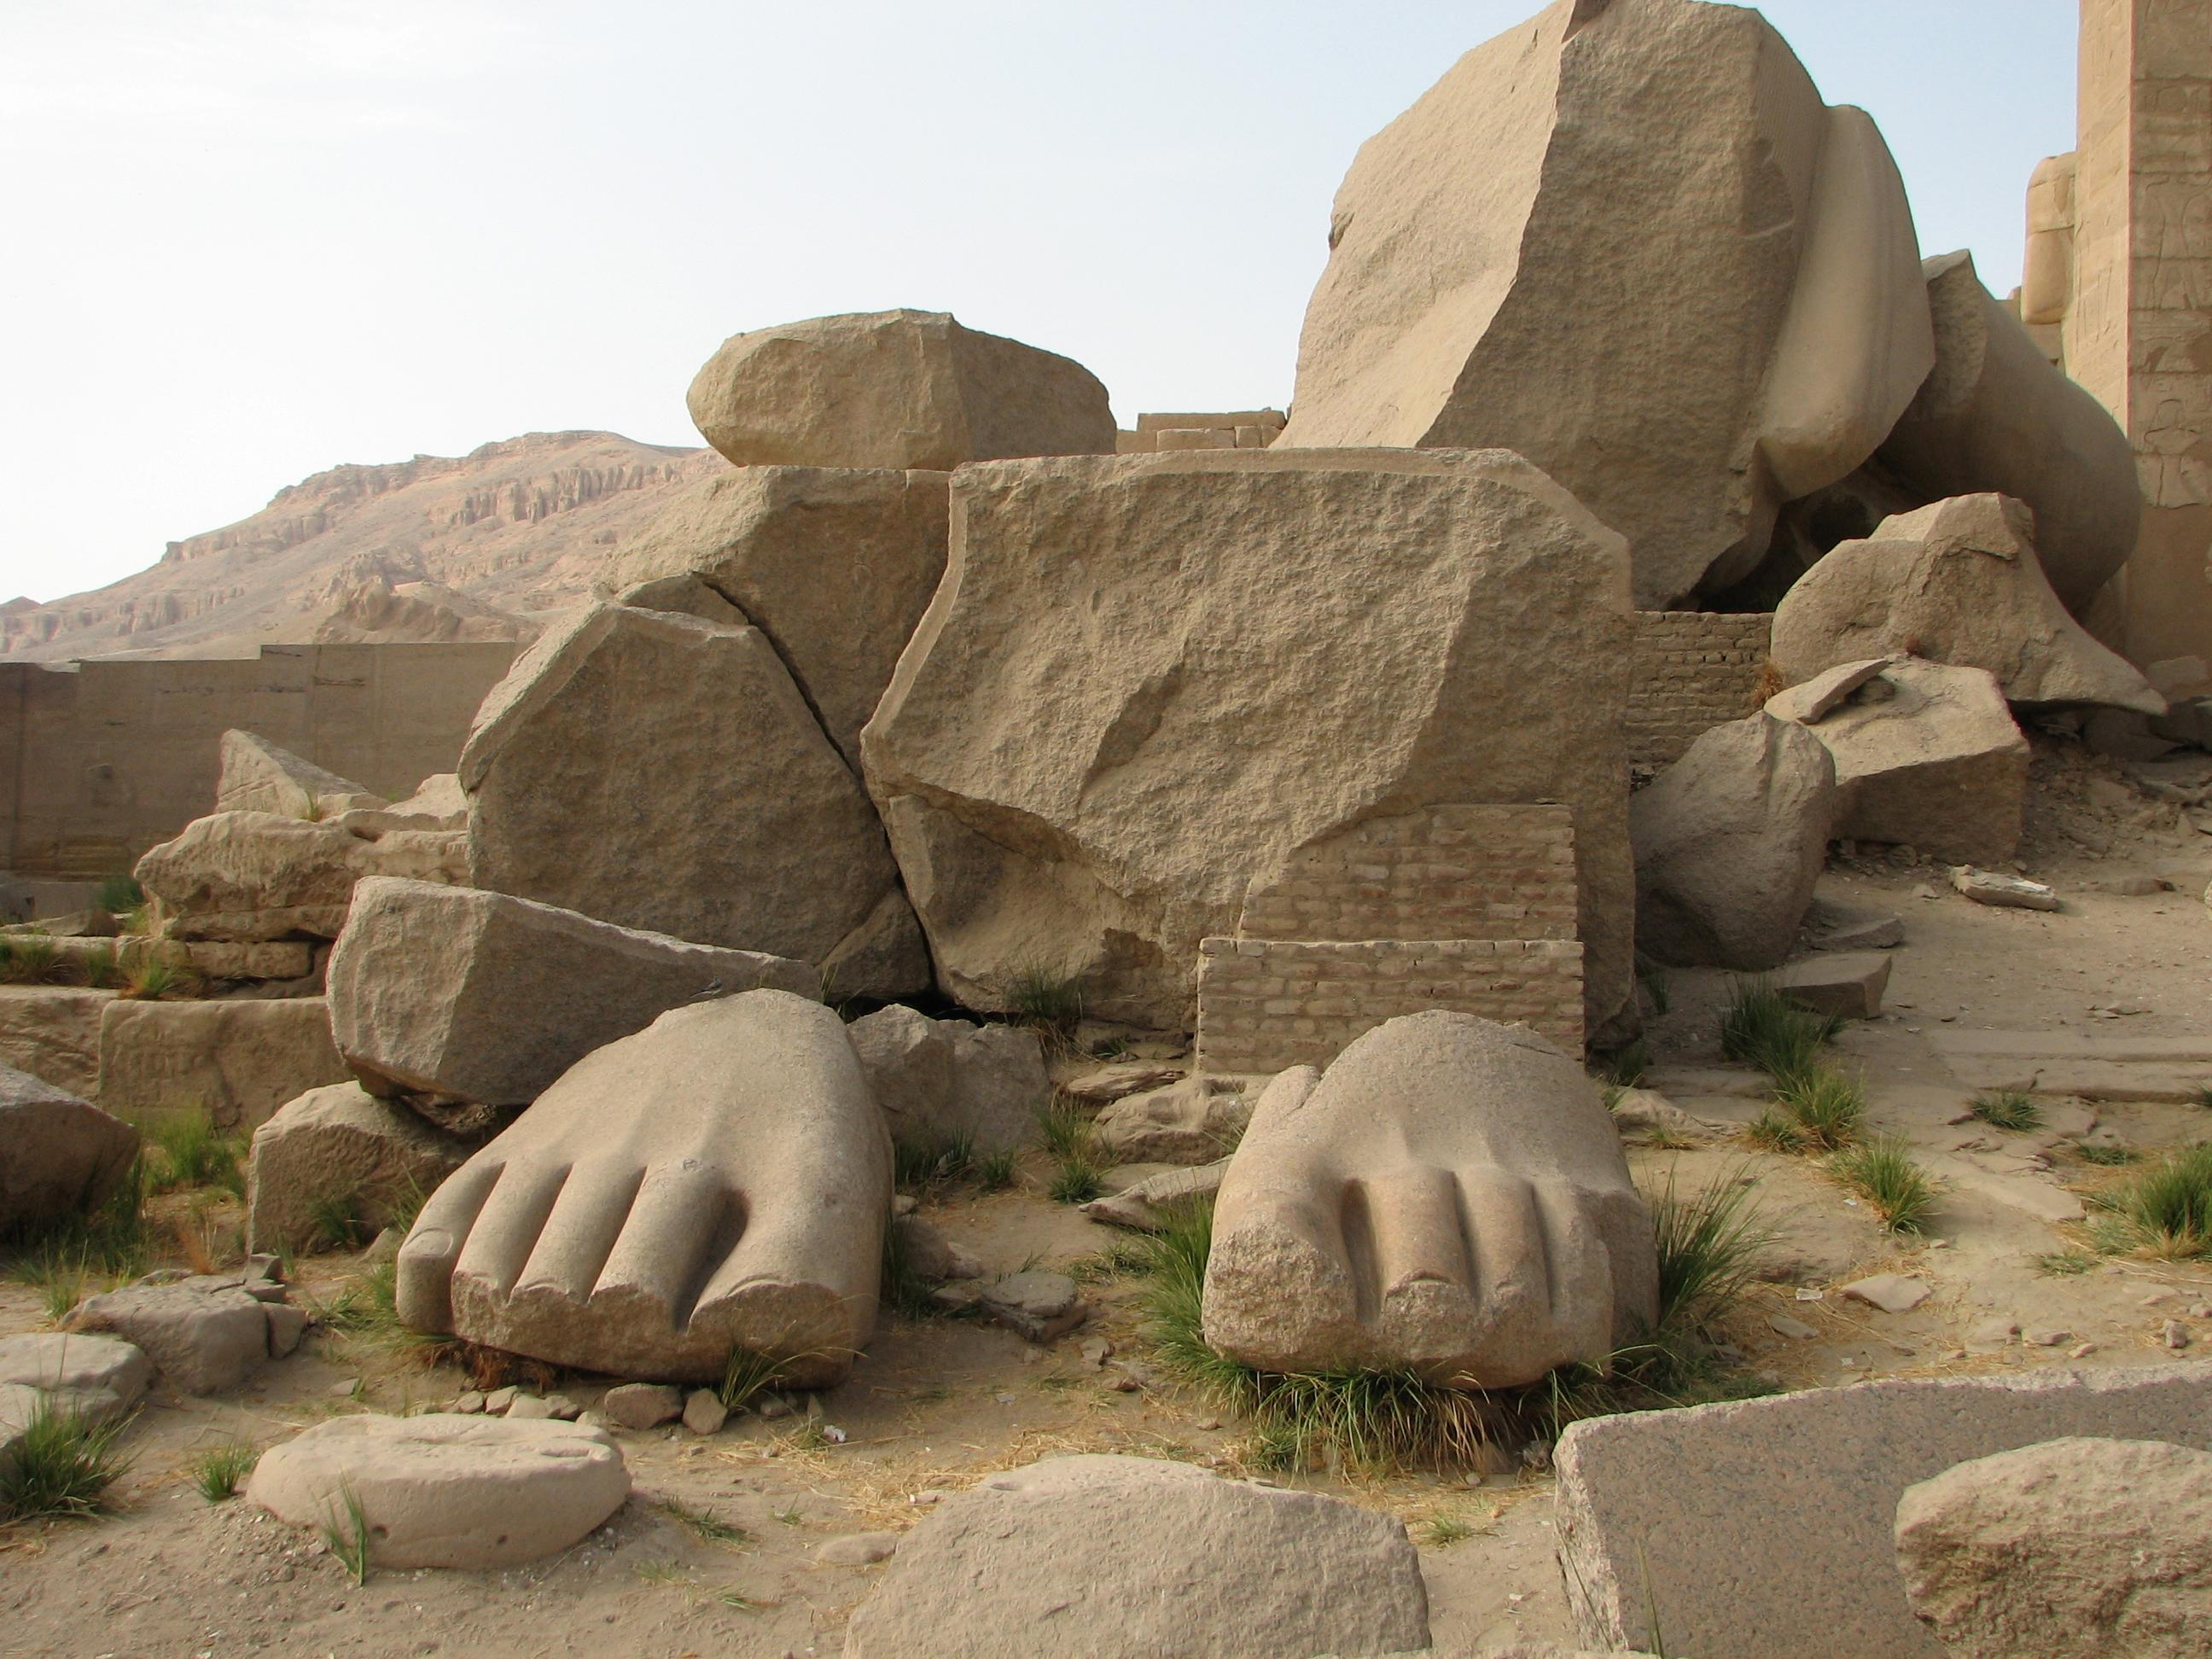 http://bensten.files.wordpress.com/2011/02/ozymandias1.jpg